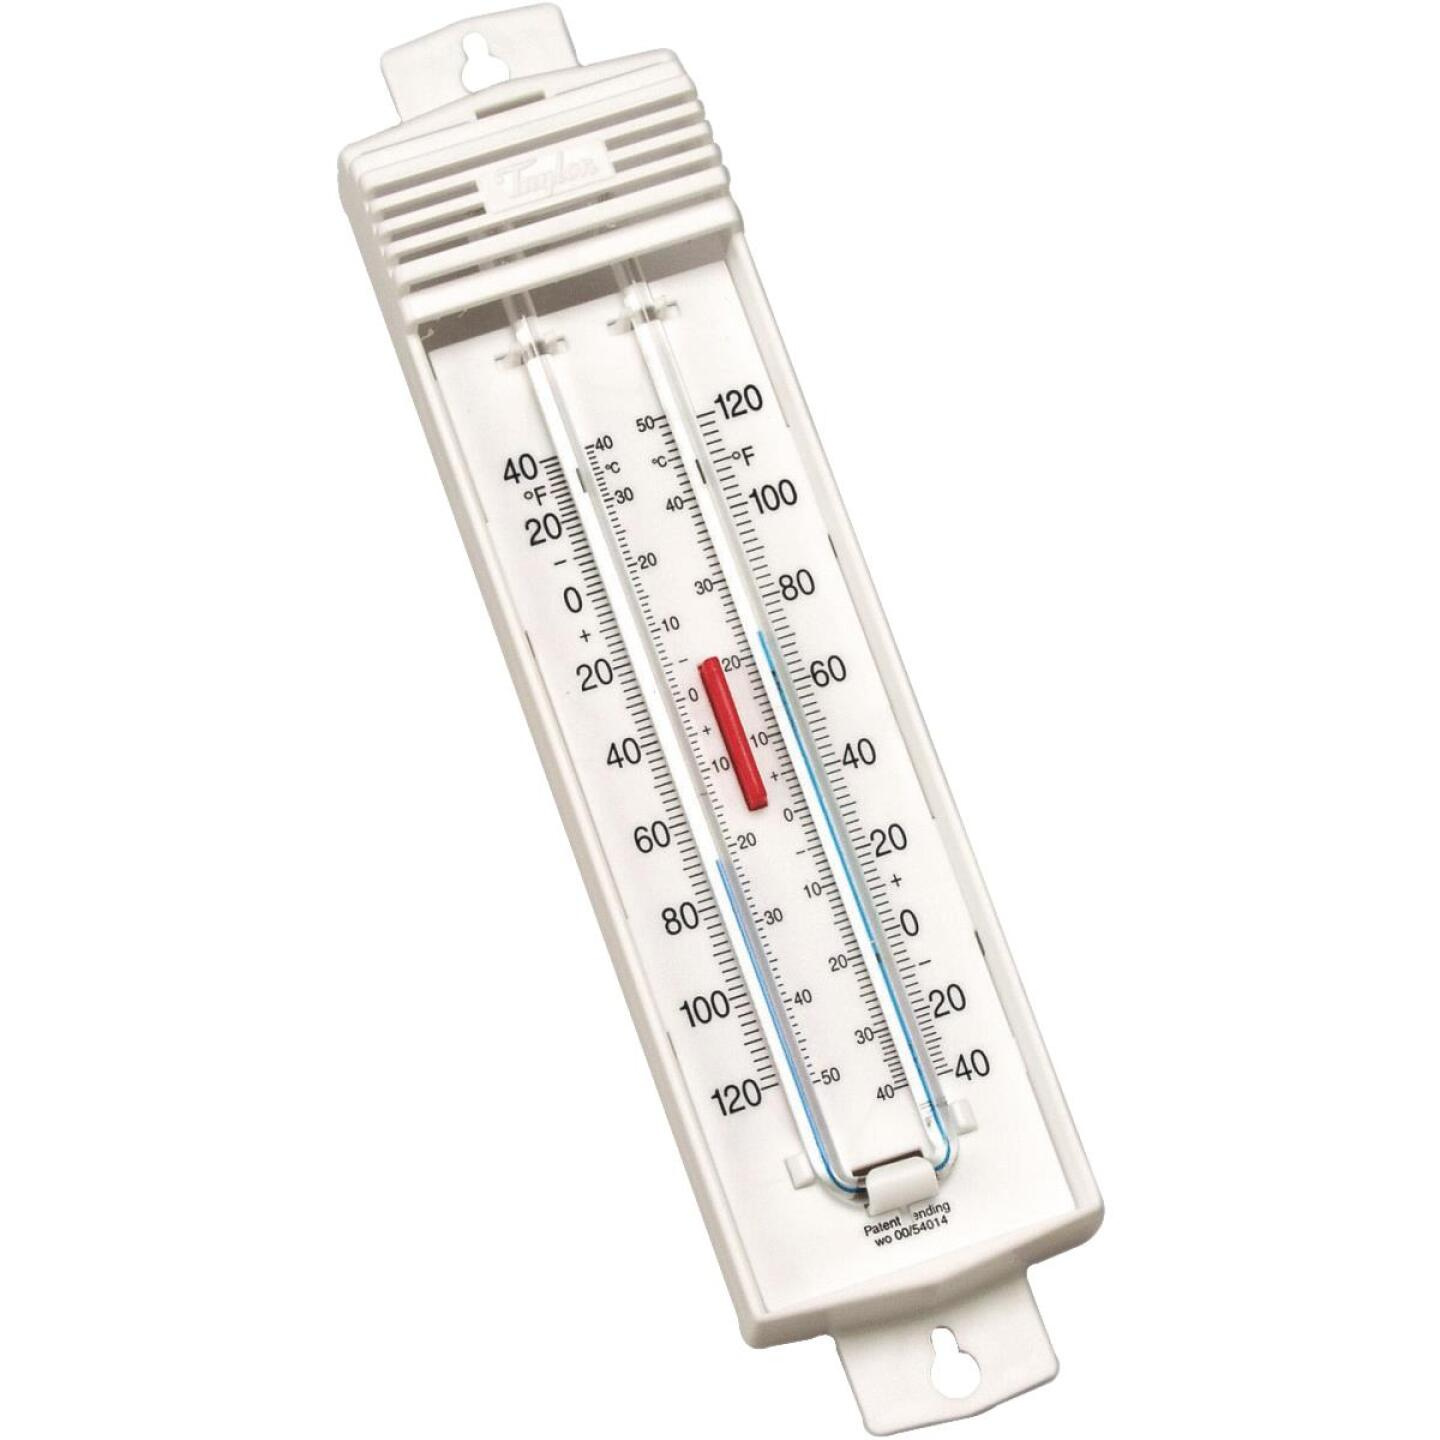 "Taylor 2-3/4"" W x 8-3/4"" H Plastic Tube Indoor & Outdoor Thermometer Image 1"